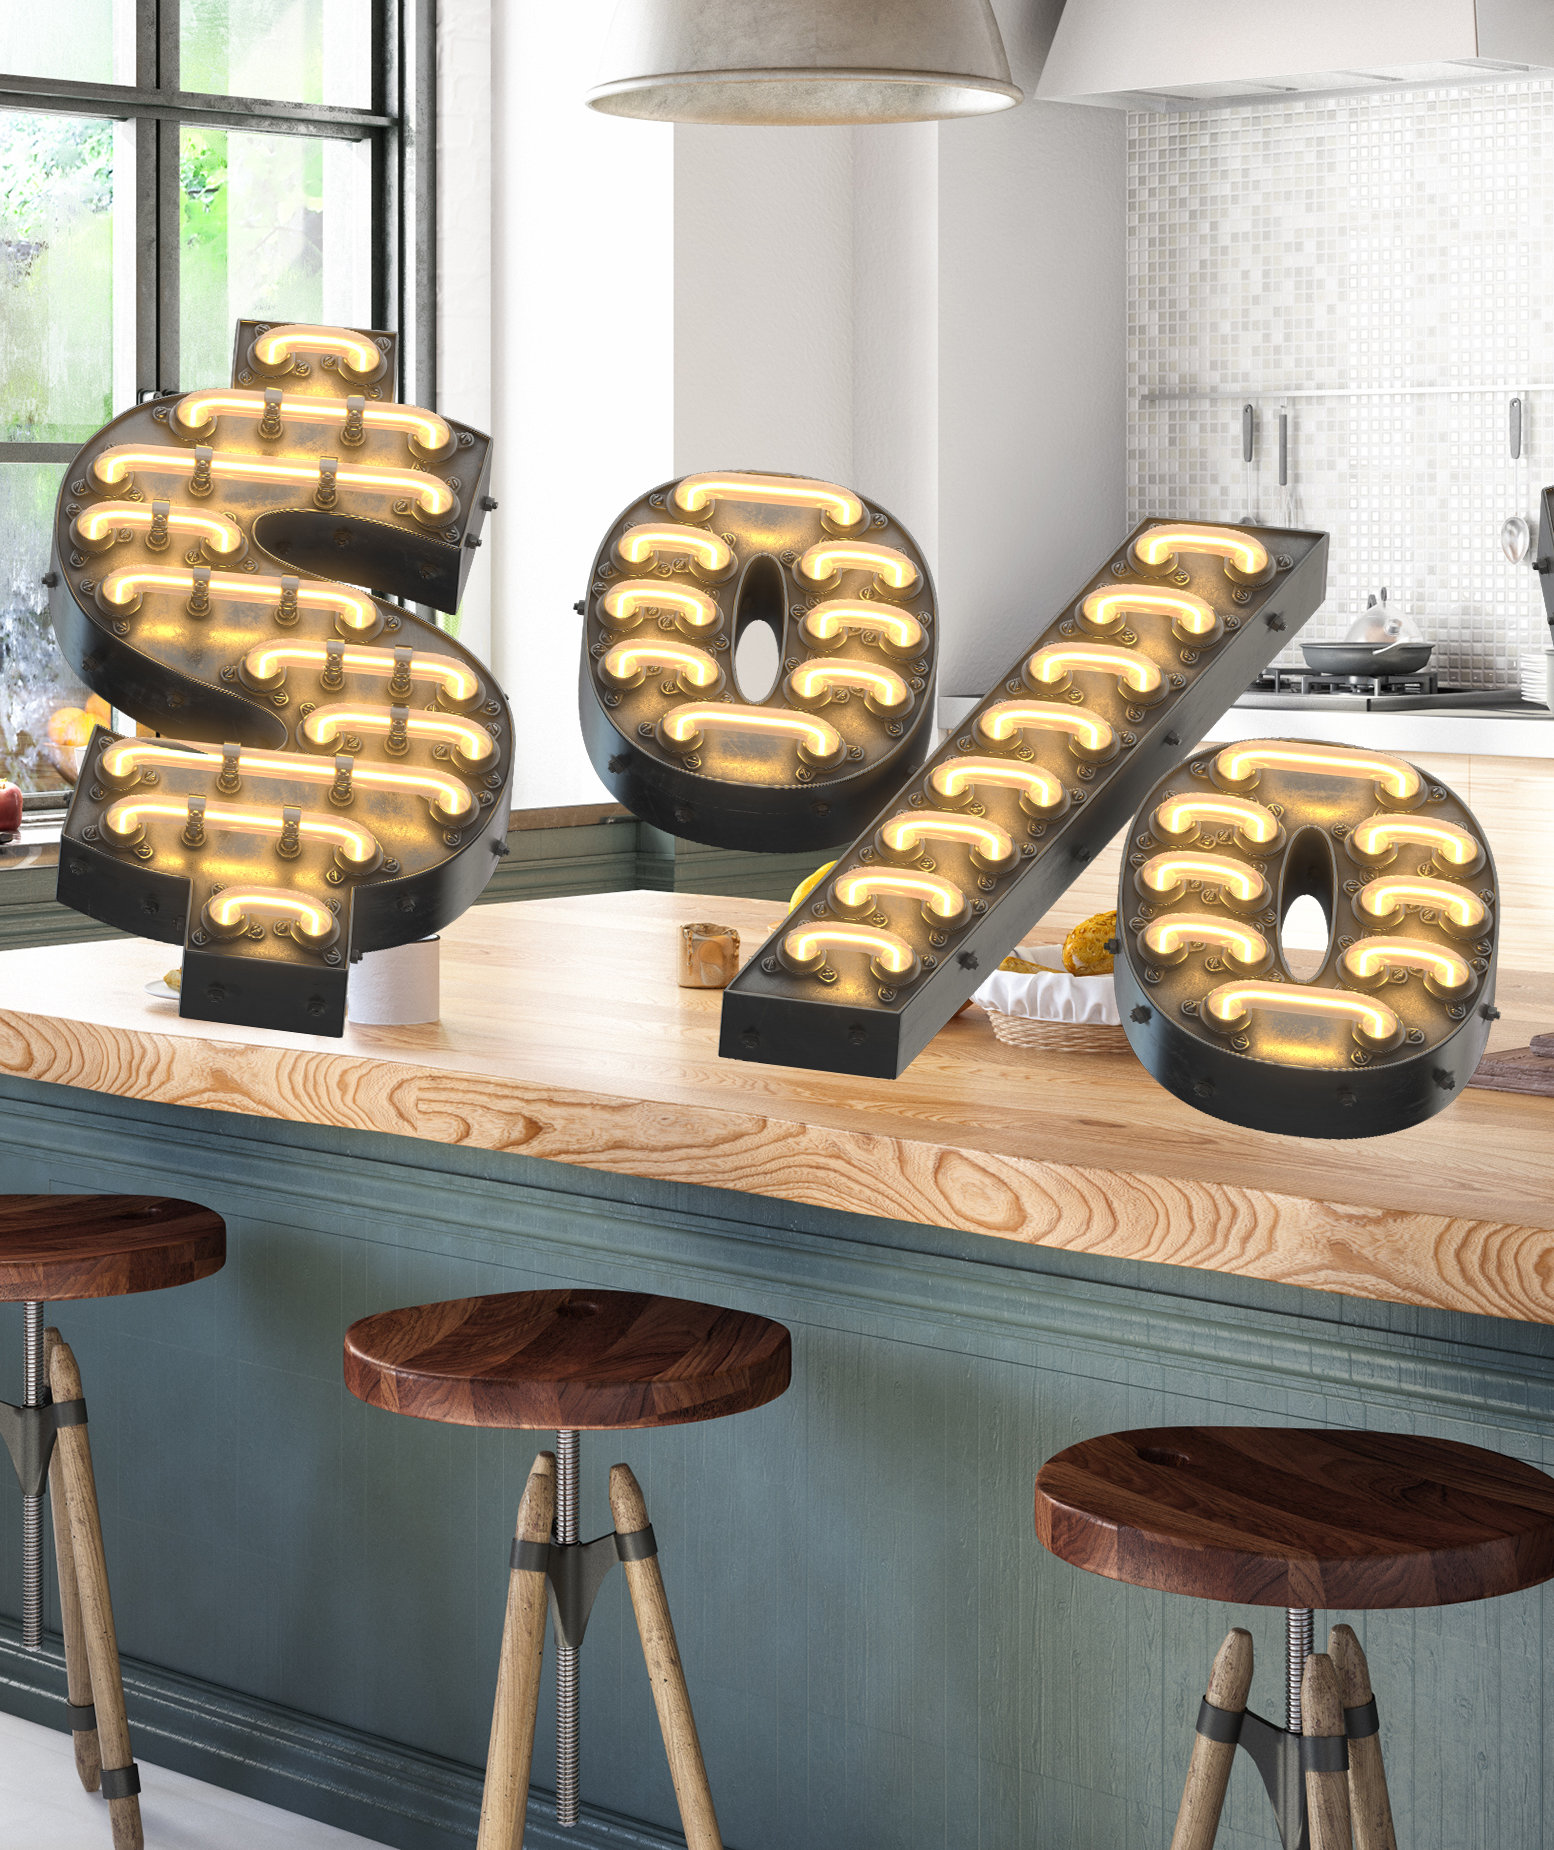 The #1 Rule for How Much to Spend onYour Kitchen Remodel